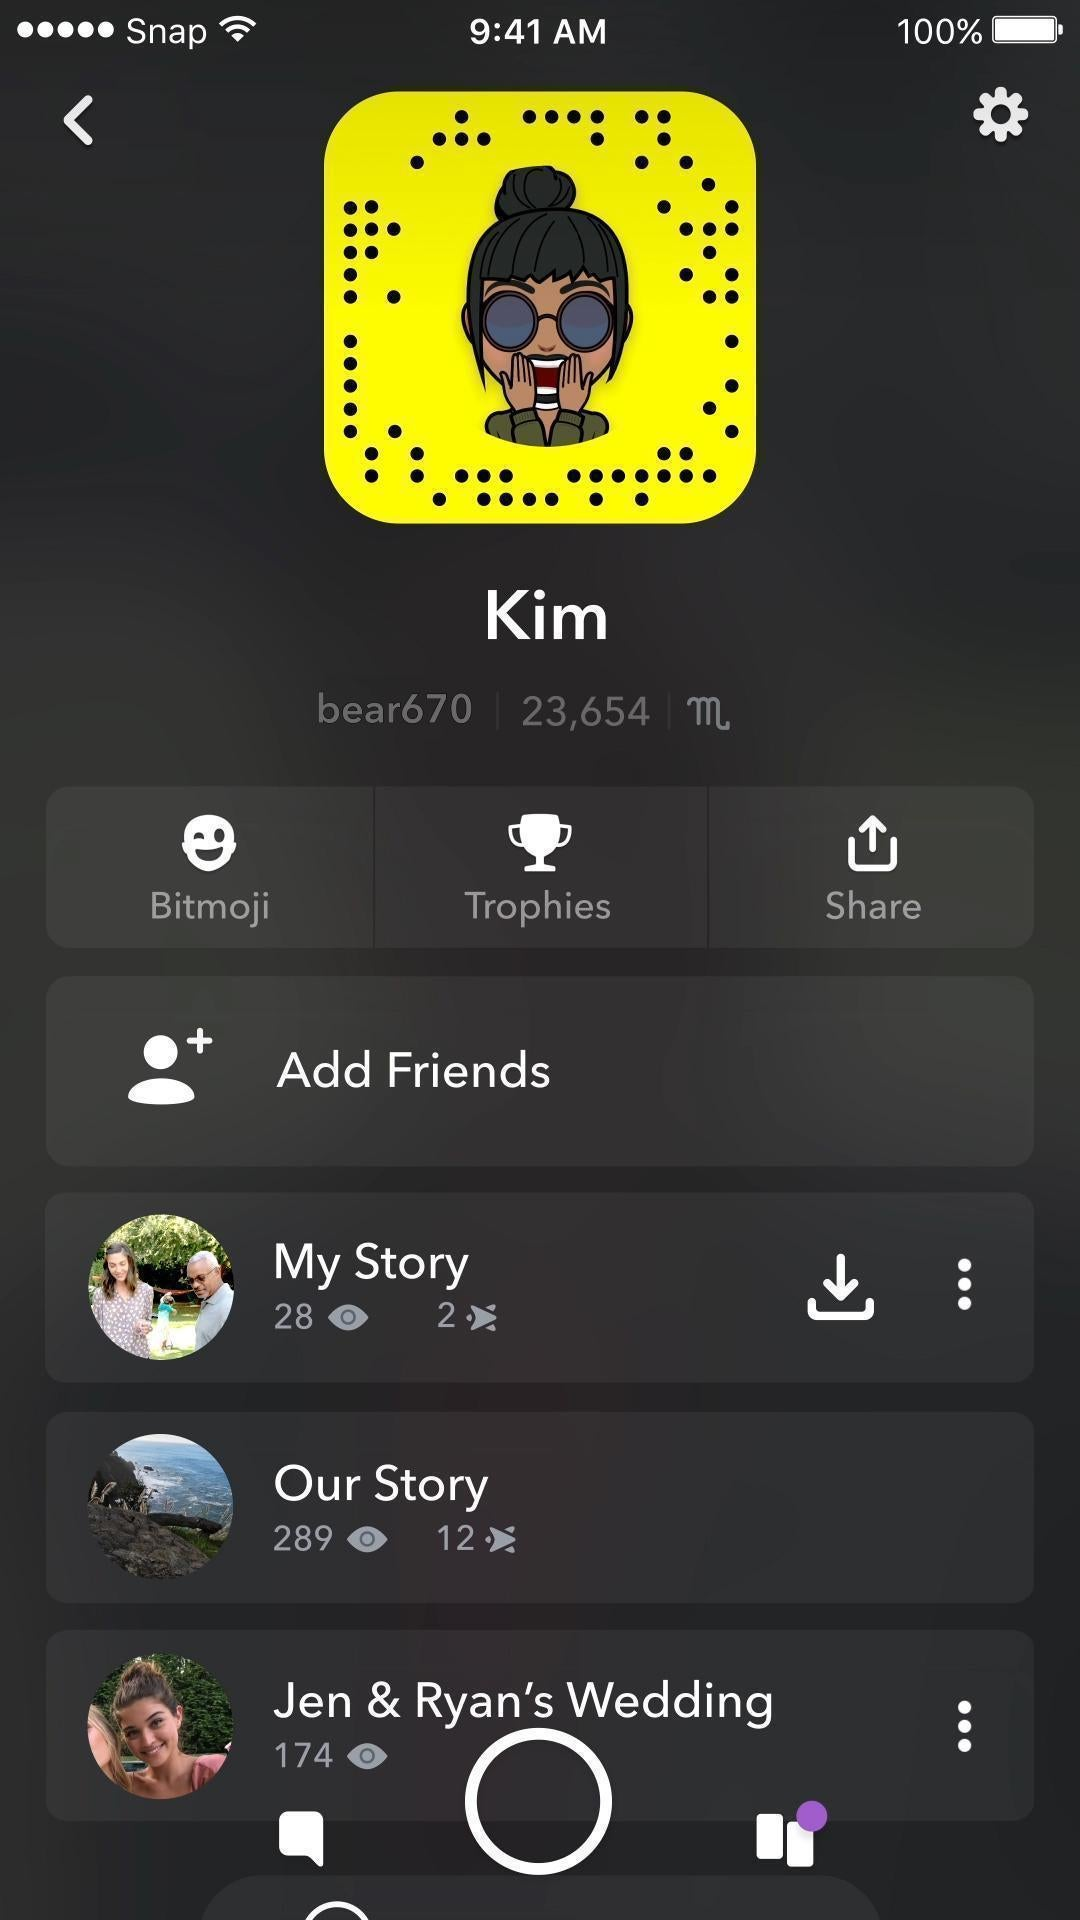 How do you watch my story on snapchat